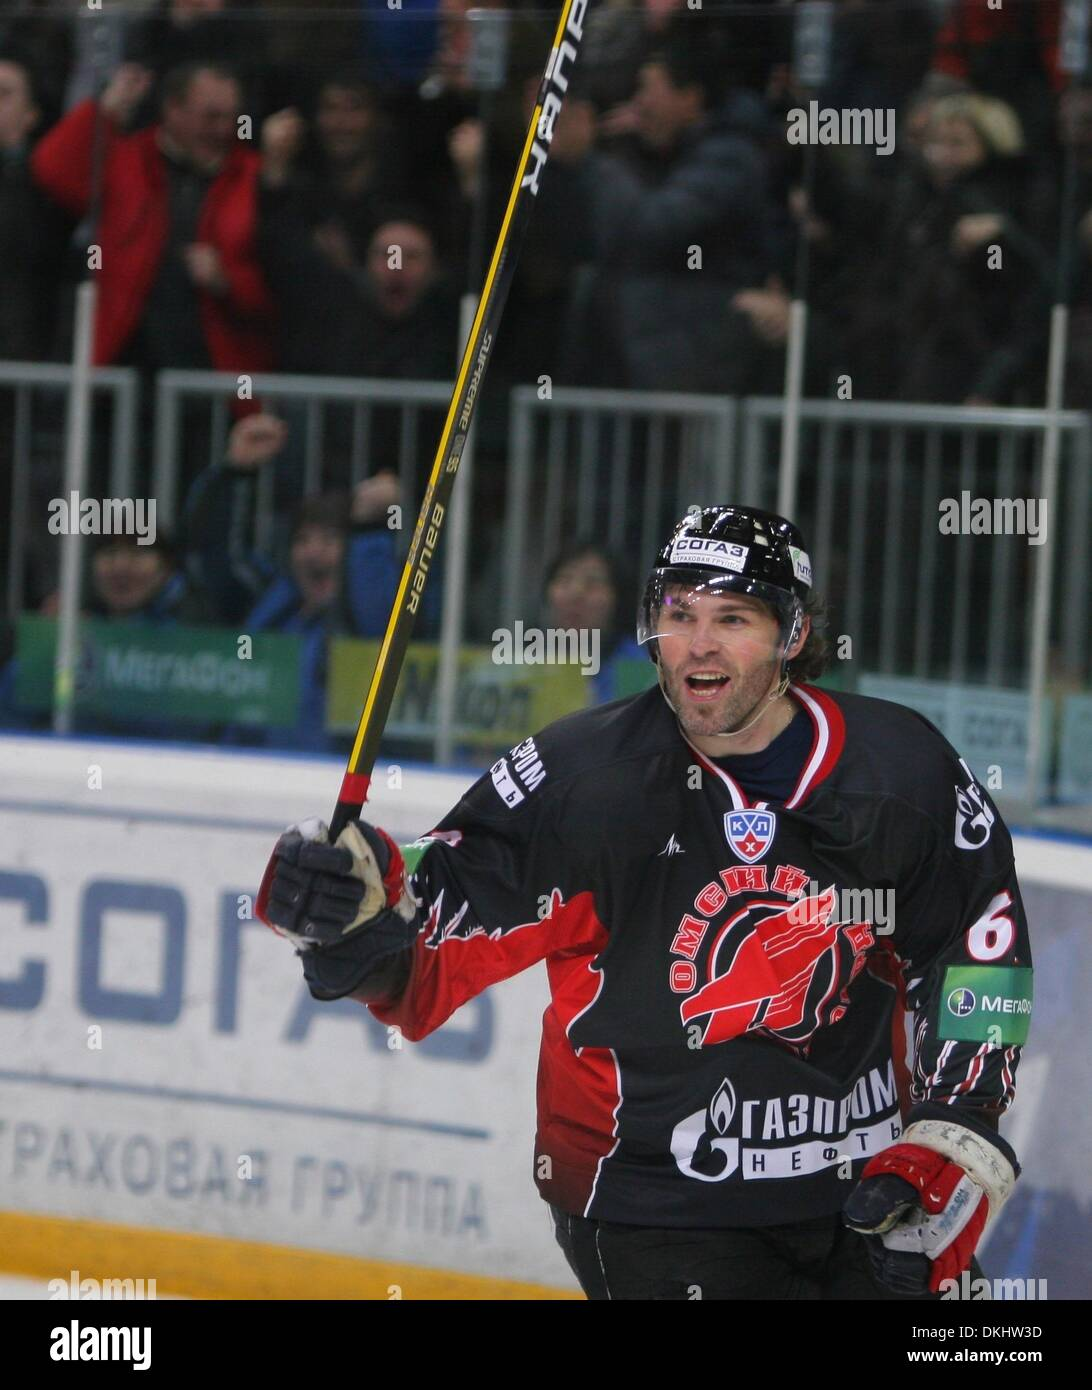 24. November 2009 - Moskau, Russland - ehemalige New York Ranger star JAROMIR JAGR spielt jetzt für internationale professionelle Hockey-Liga KHL (Kontinental Hockey League) mit dem Club Avangard Omsk. (Kredit-Bild: © PhotoXpress/ZUMA Press) Stockbild